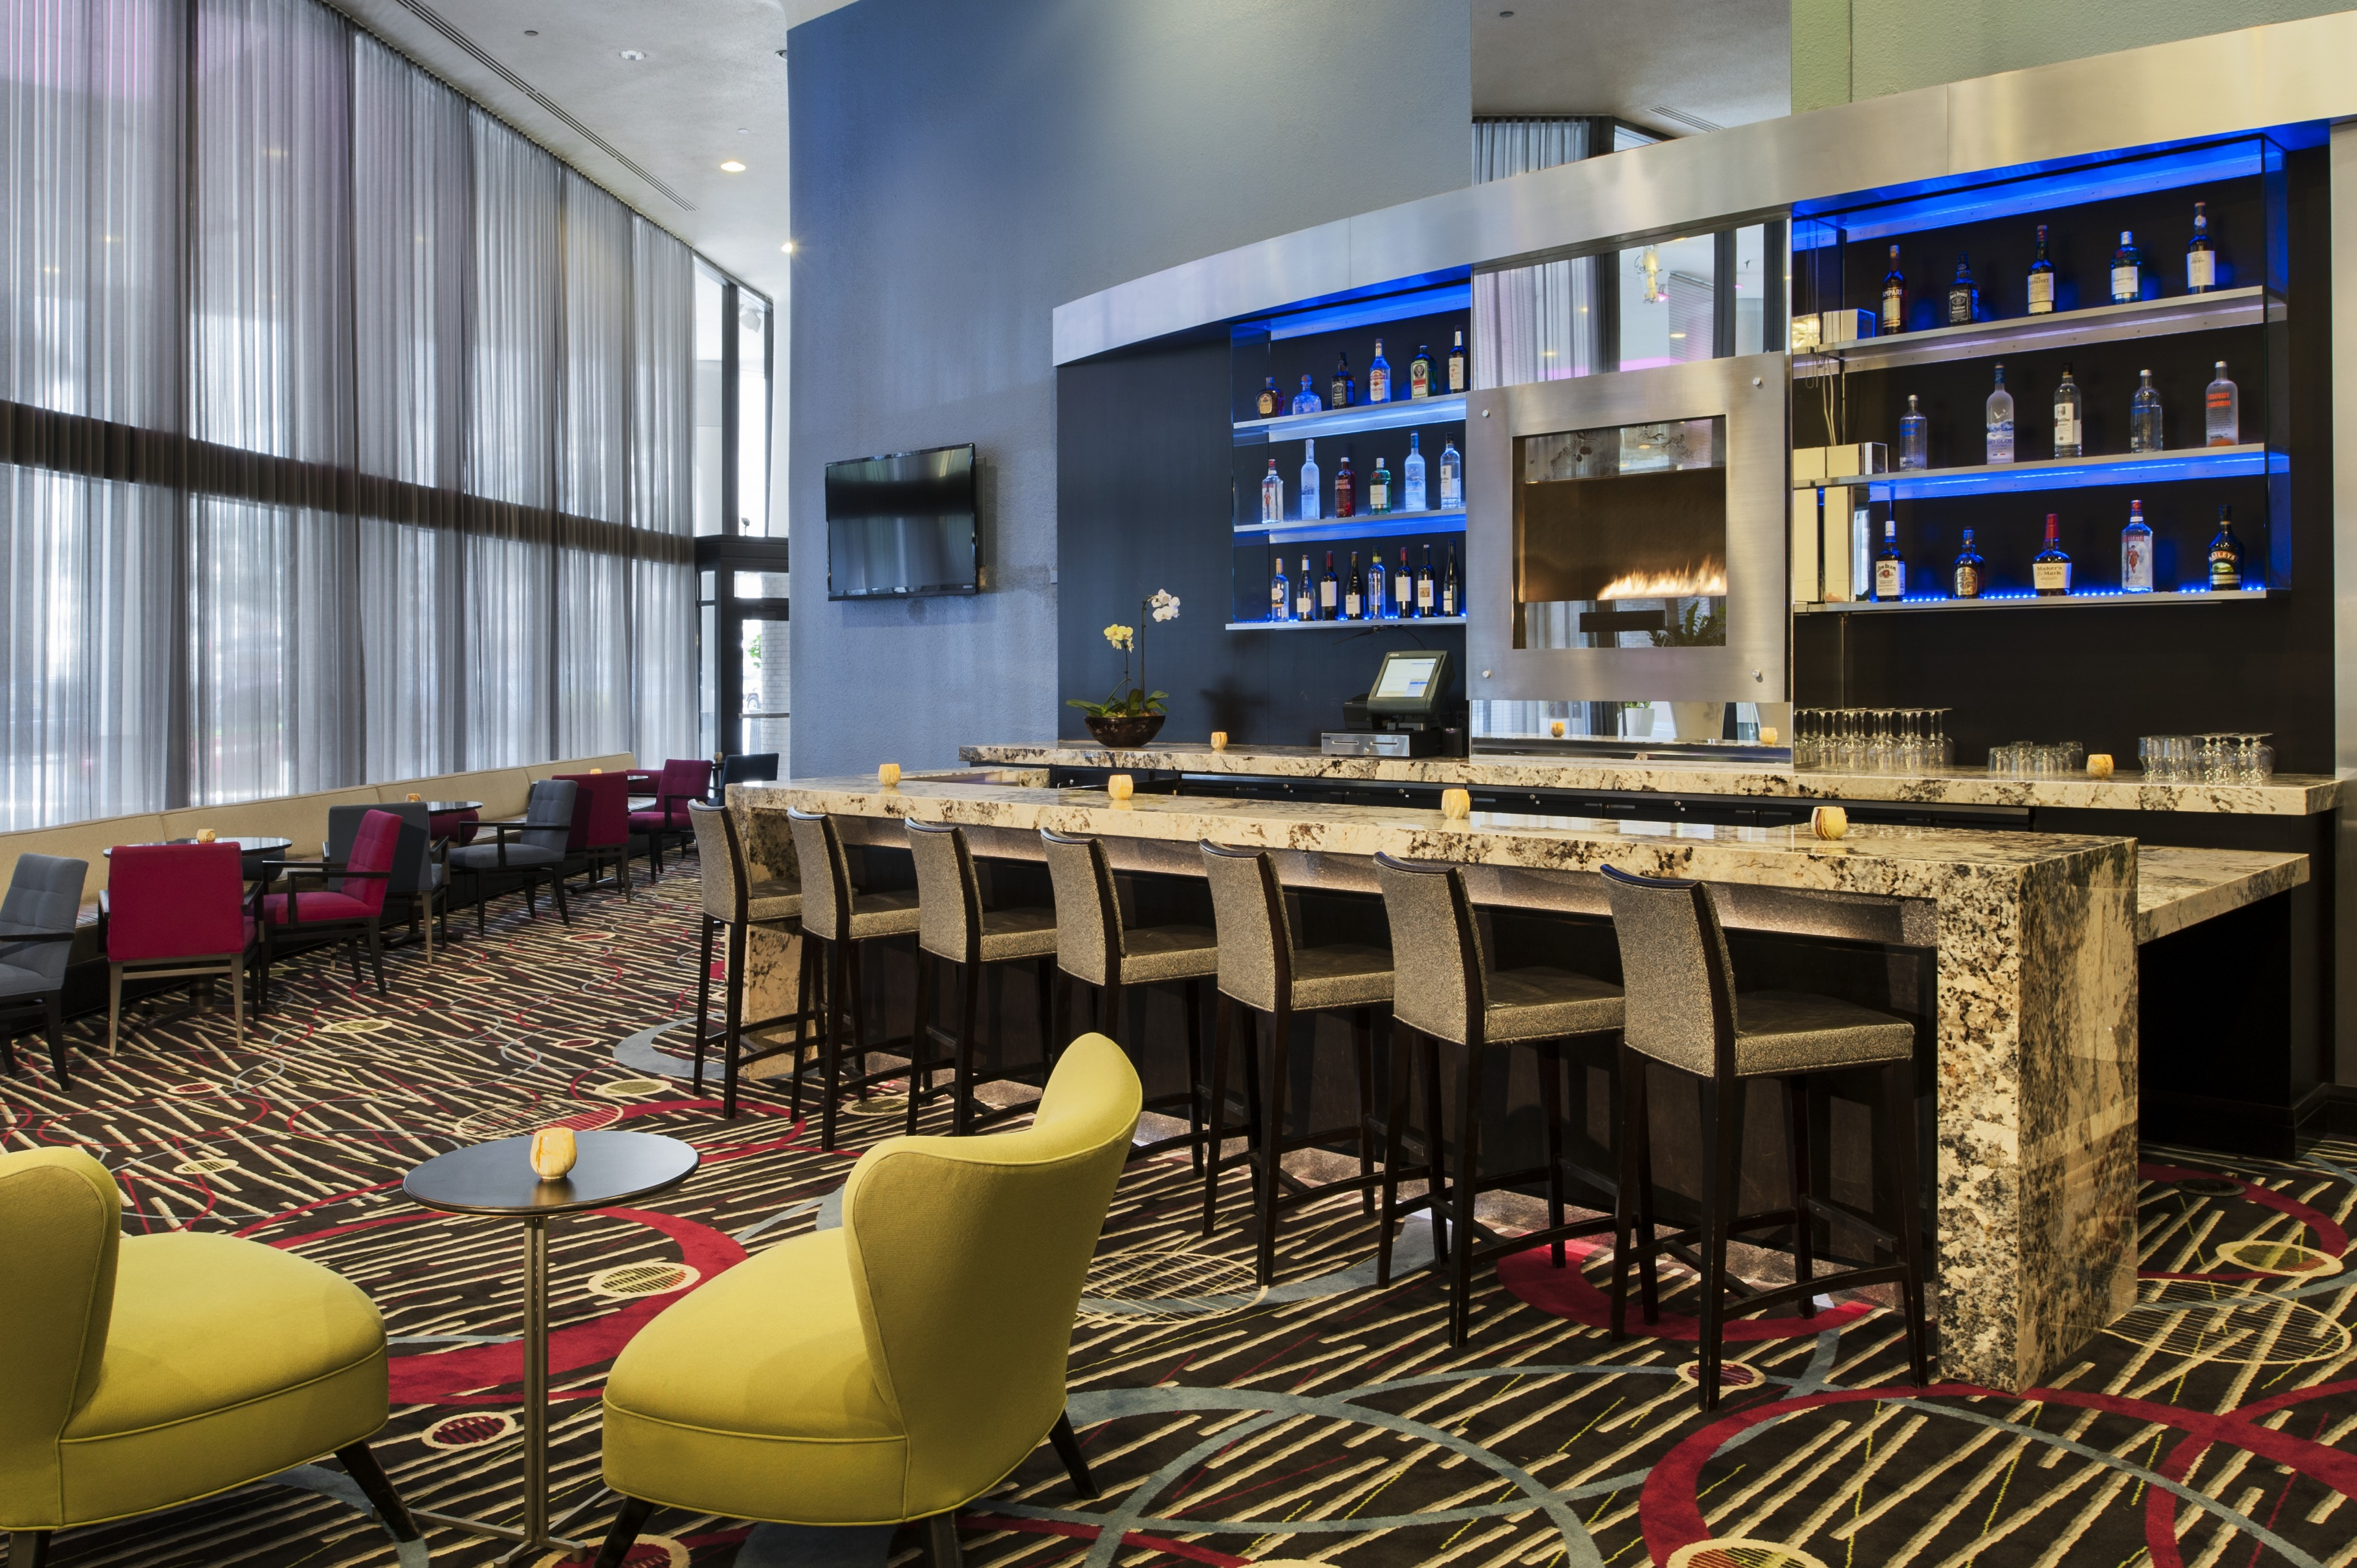 Doubletree by hilton mag mile chicago book day rooms for Luxury hotels in chicago magnificent mile